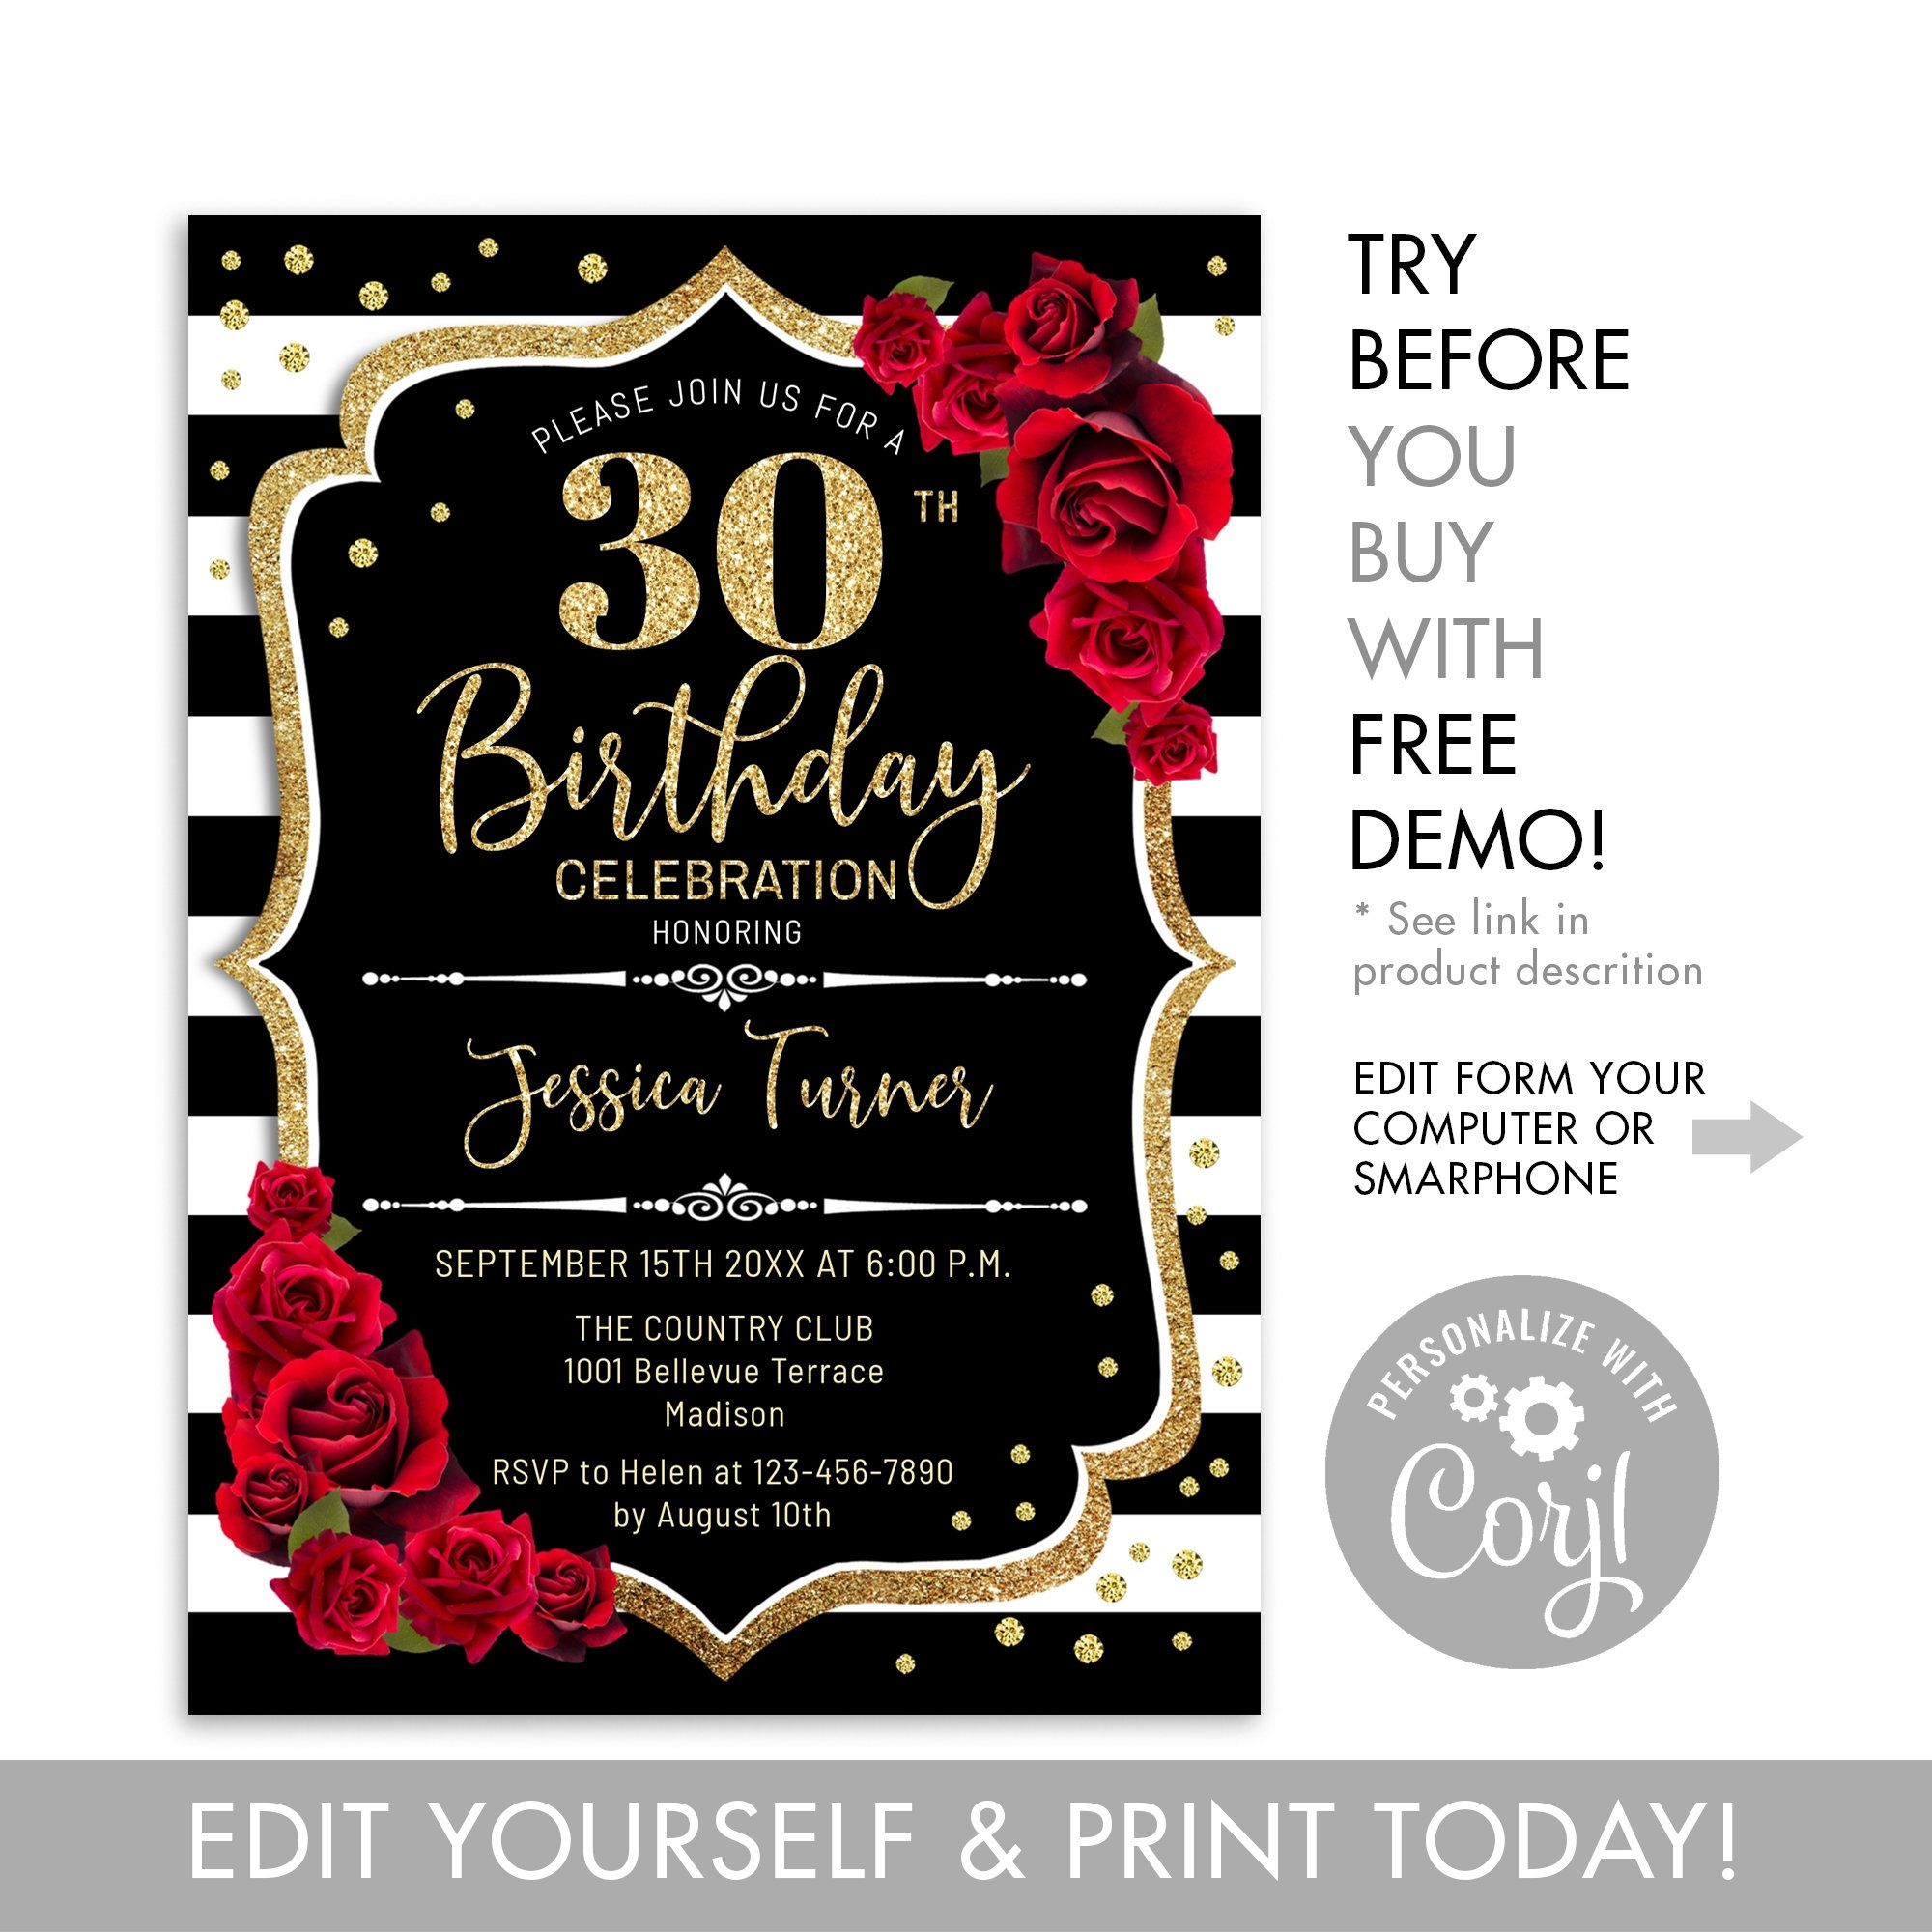 30th Birthday Invitation Instant Download Digital Template Any Age Black White Stripes Glitter Gold Red Roses Floral Birthday Invite 30th Birthday Party Invitations Printable Birthday Invitations 30th Birthday Invitations